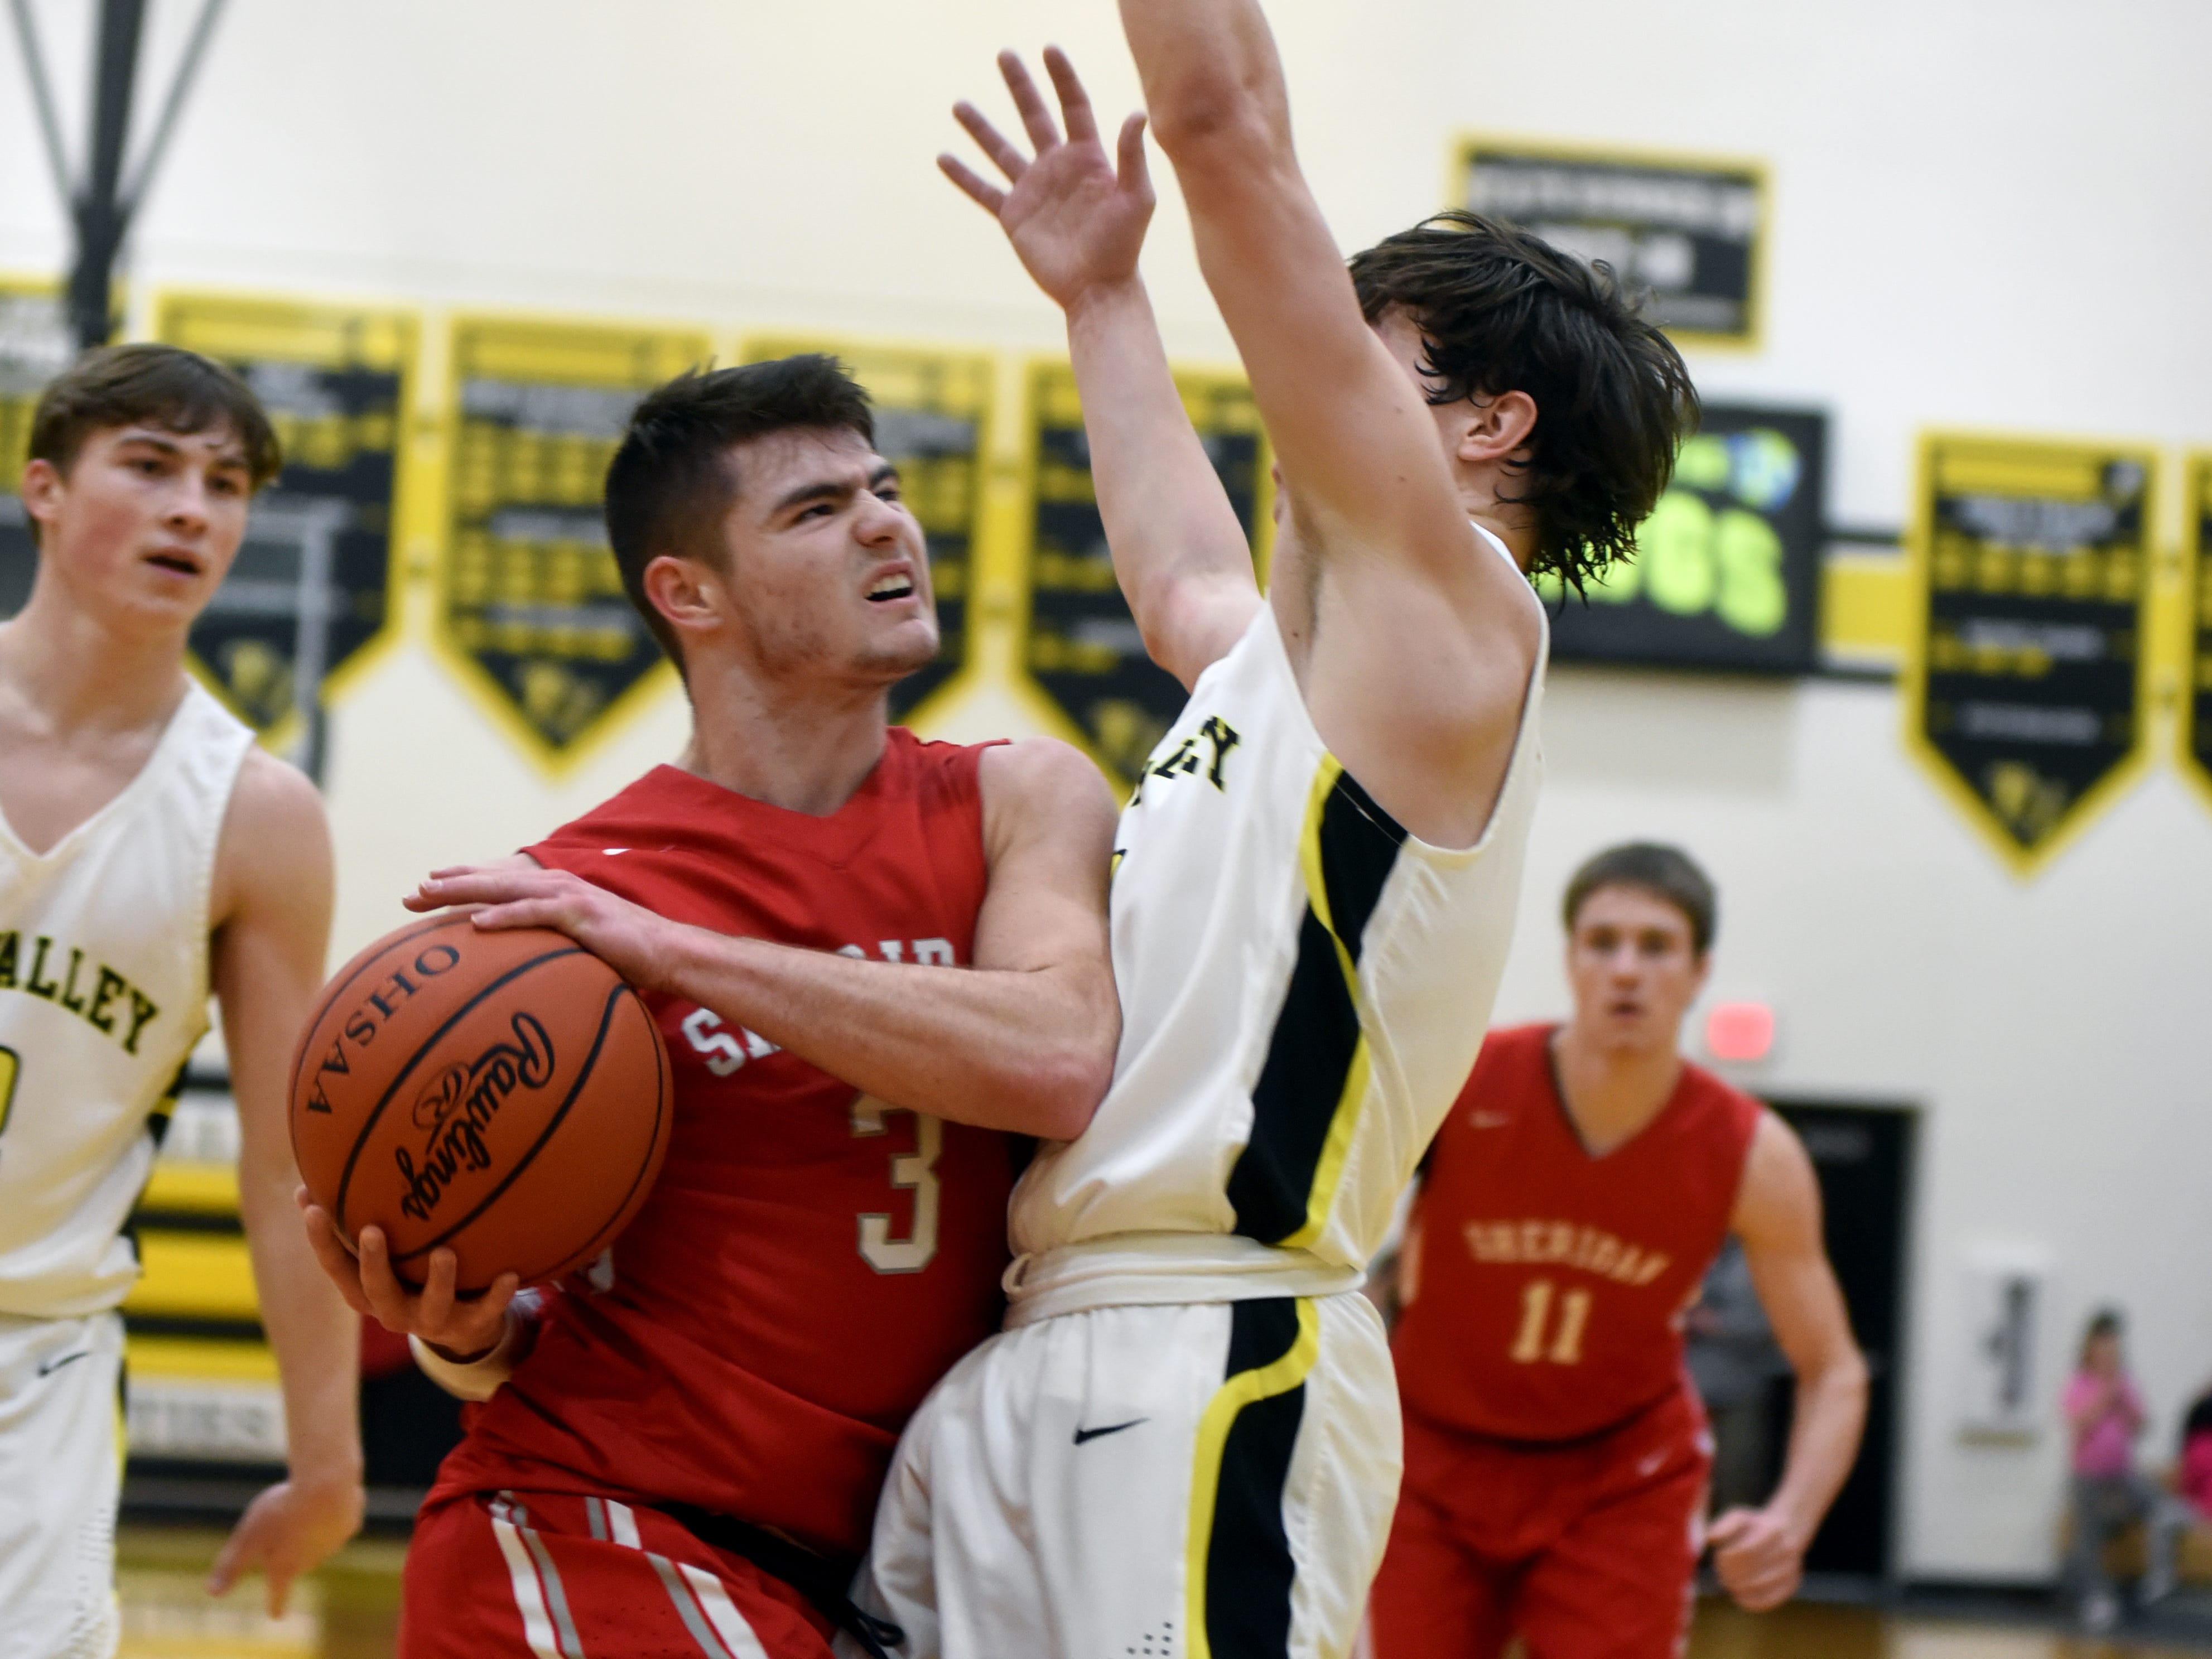 Ethan Heller, of Sheridan, draws contact from Tri-Valley's Matt King on a drive into the lane on Friday night in Dresden.